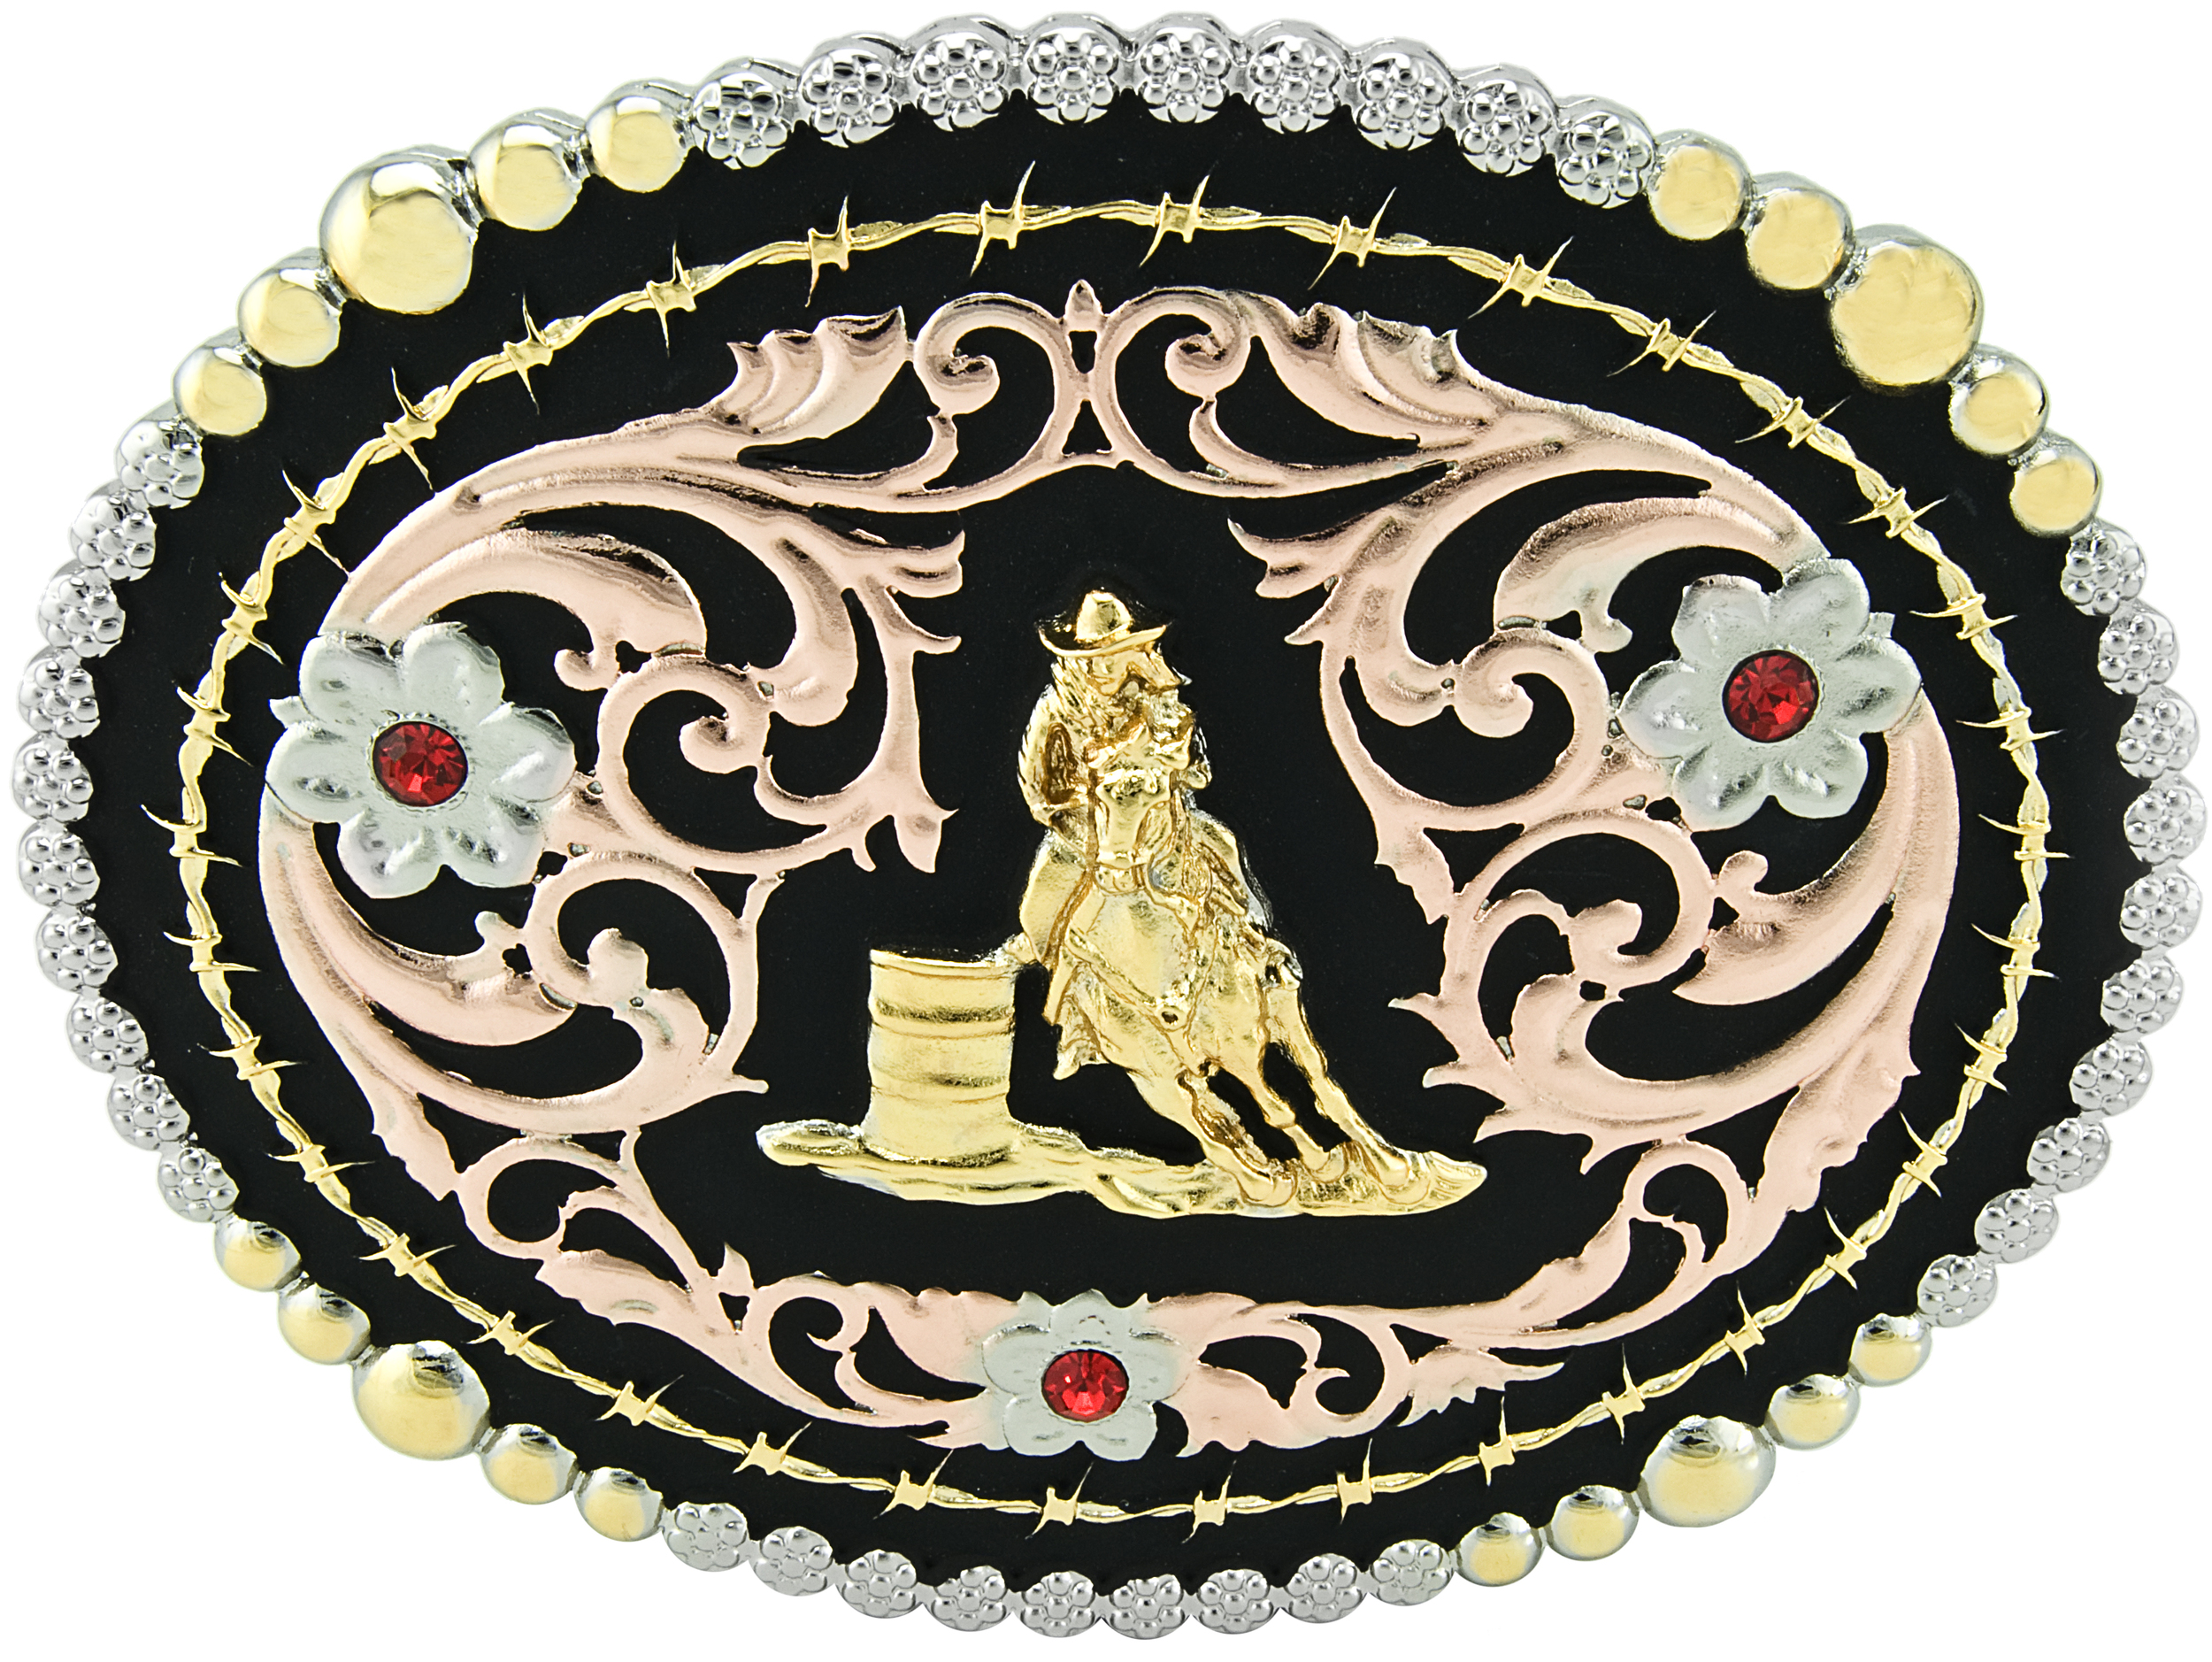 Bull Rider Tri-Color Barbed Wire Oval Buckle by Taylor Brand